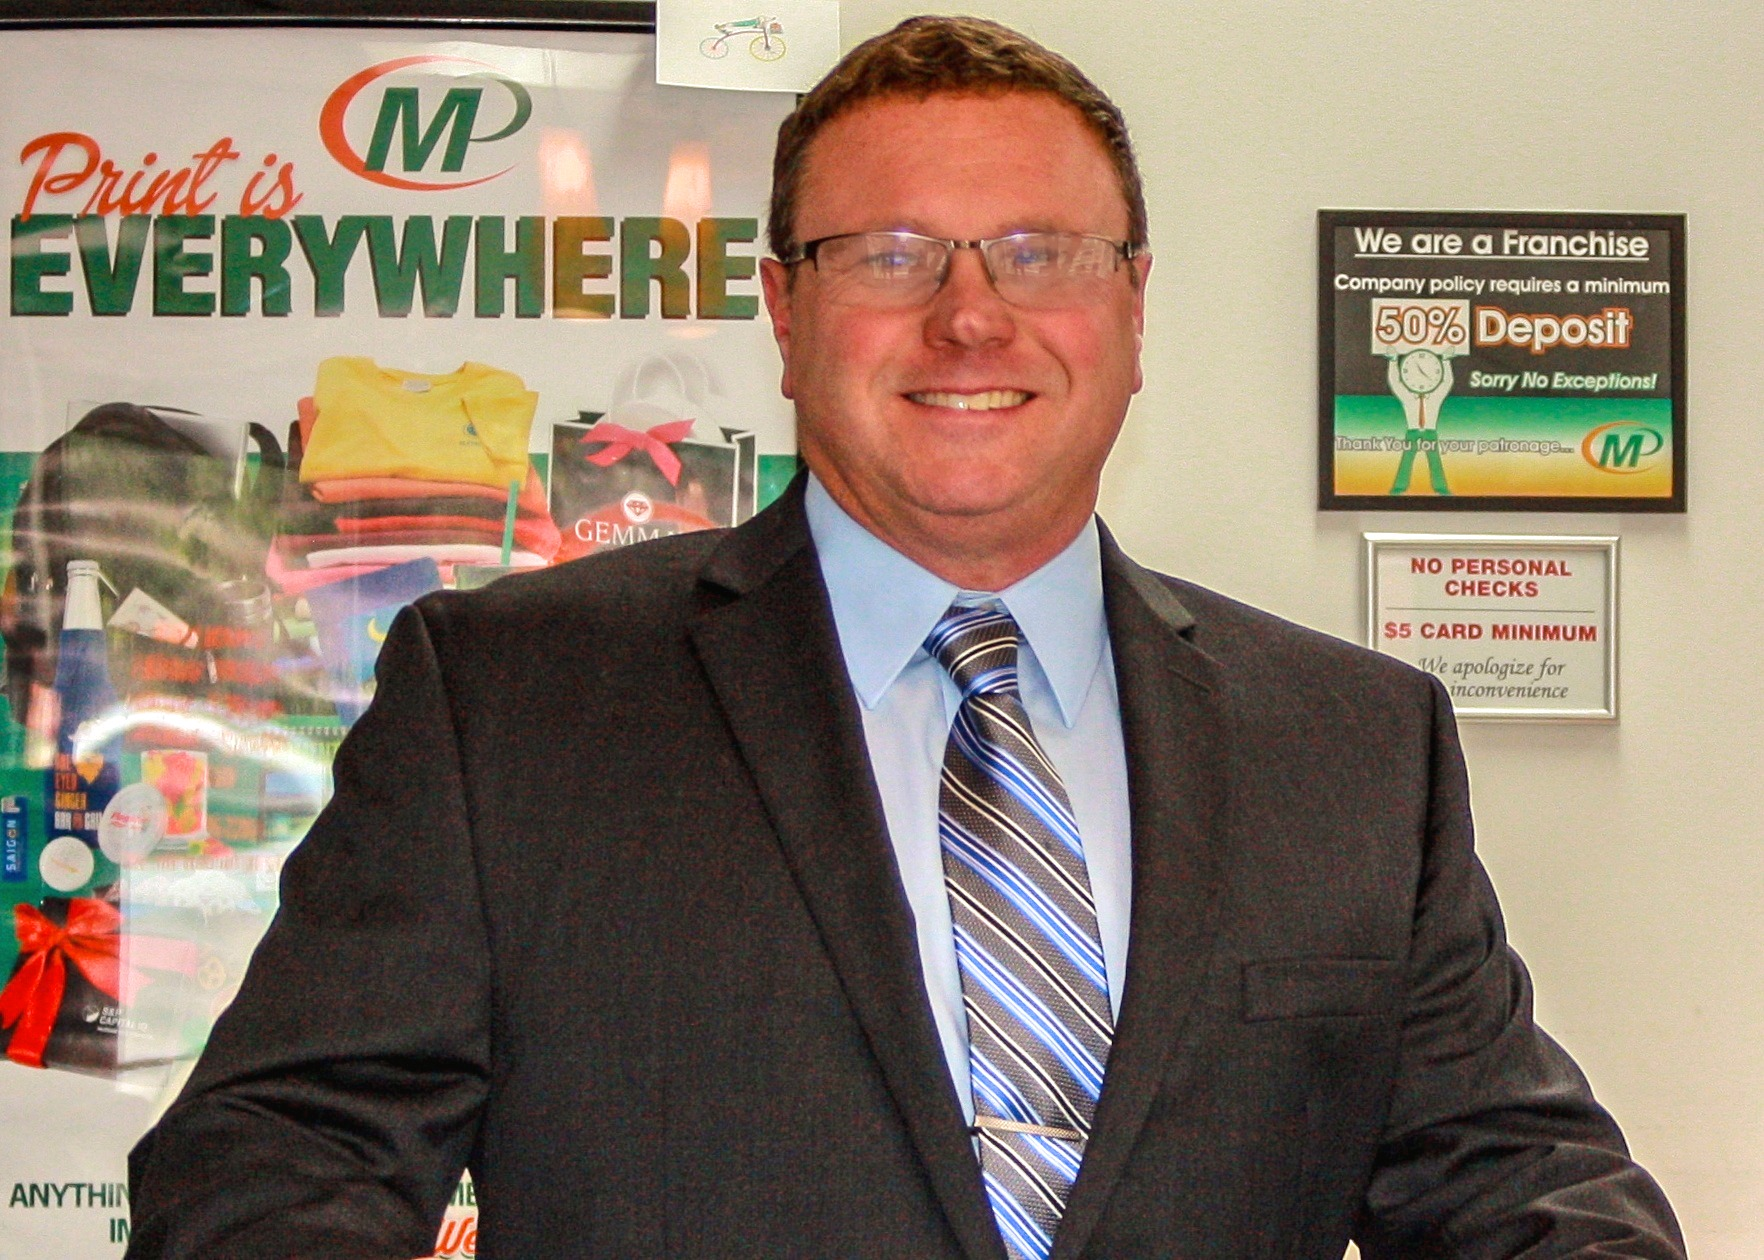 United States Marine Corps Veteran David Farmer owns the Minuteman Press franchise in Chester, VA.